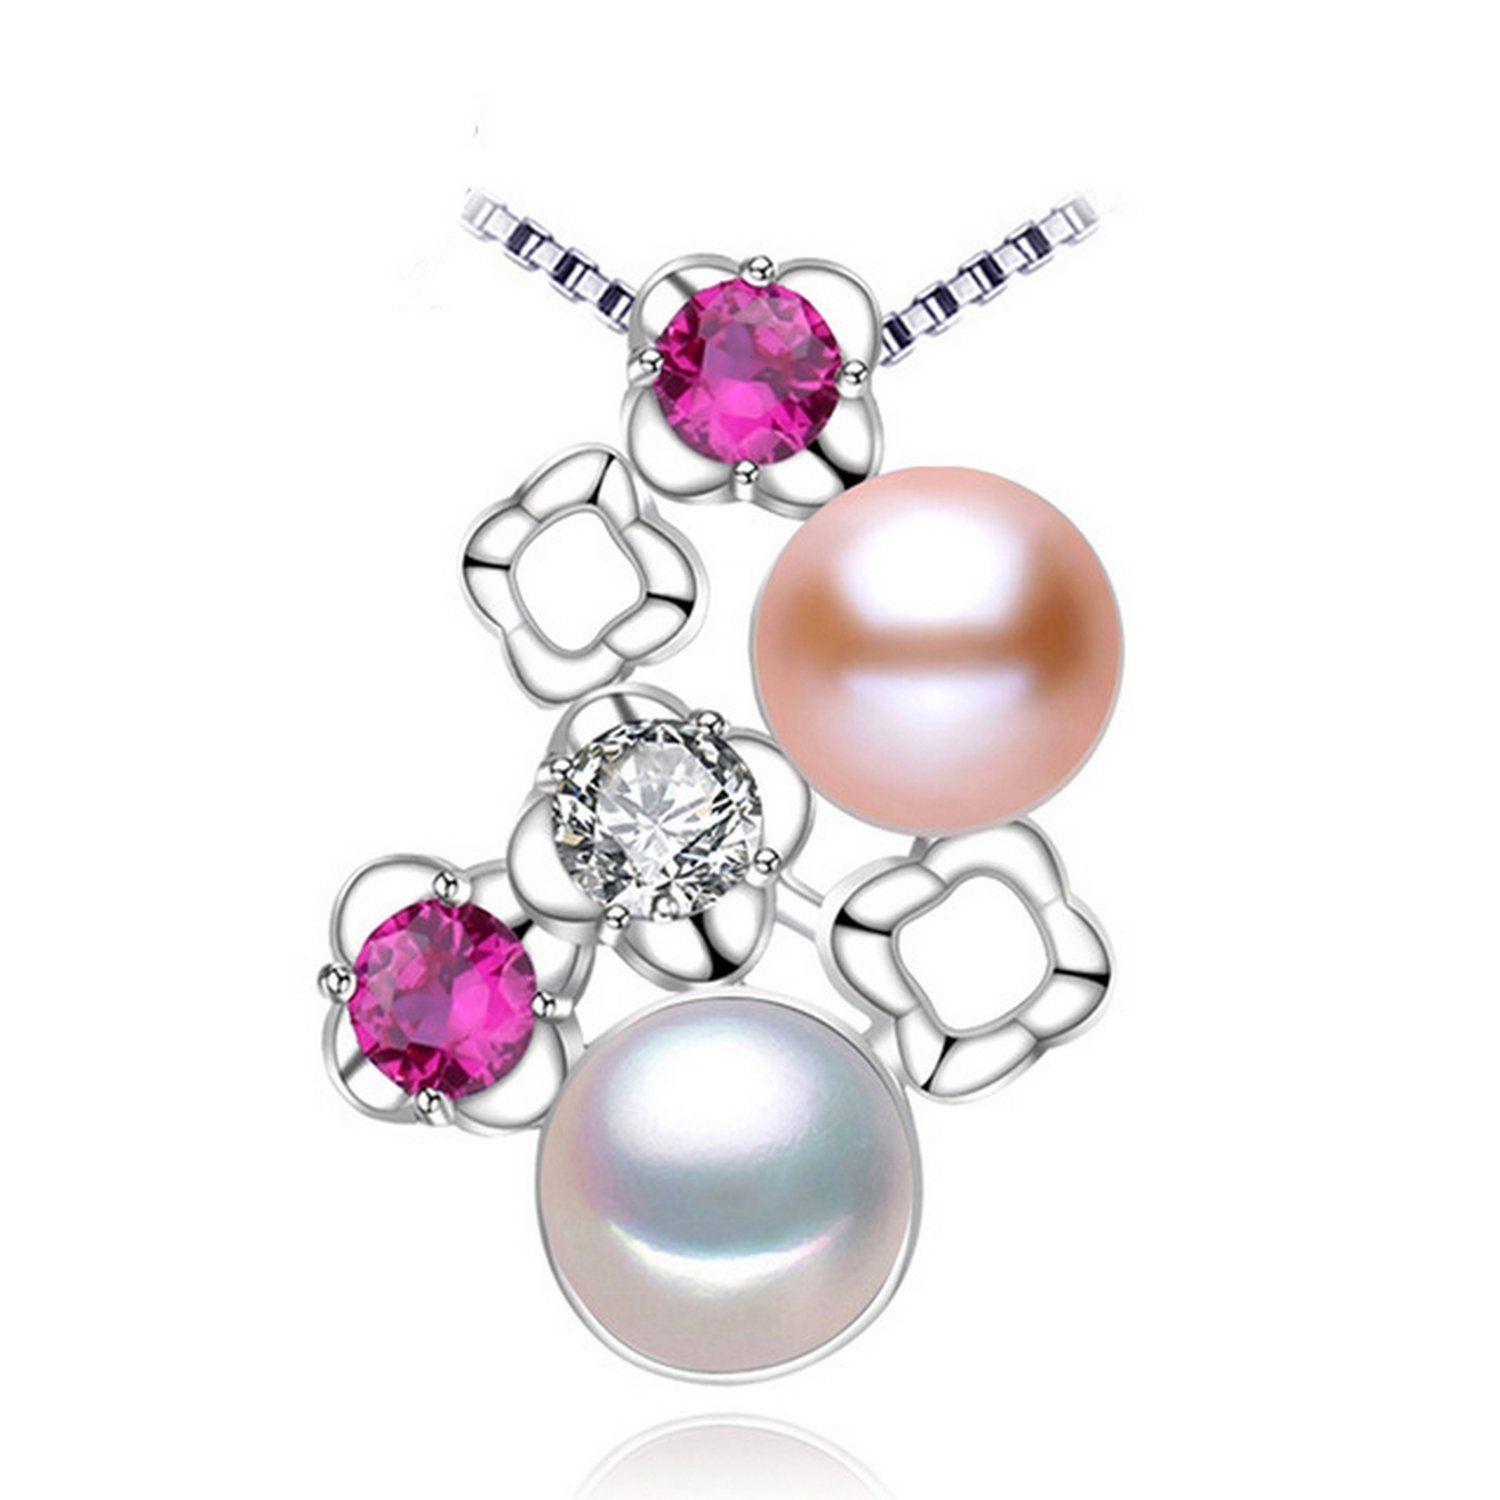 CS-DB Jewelry Silver Charm Double Pearl Chain Charm Pendants Necklaces